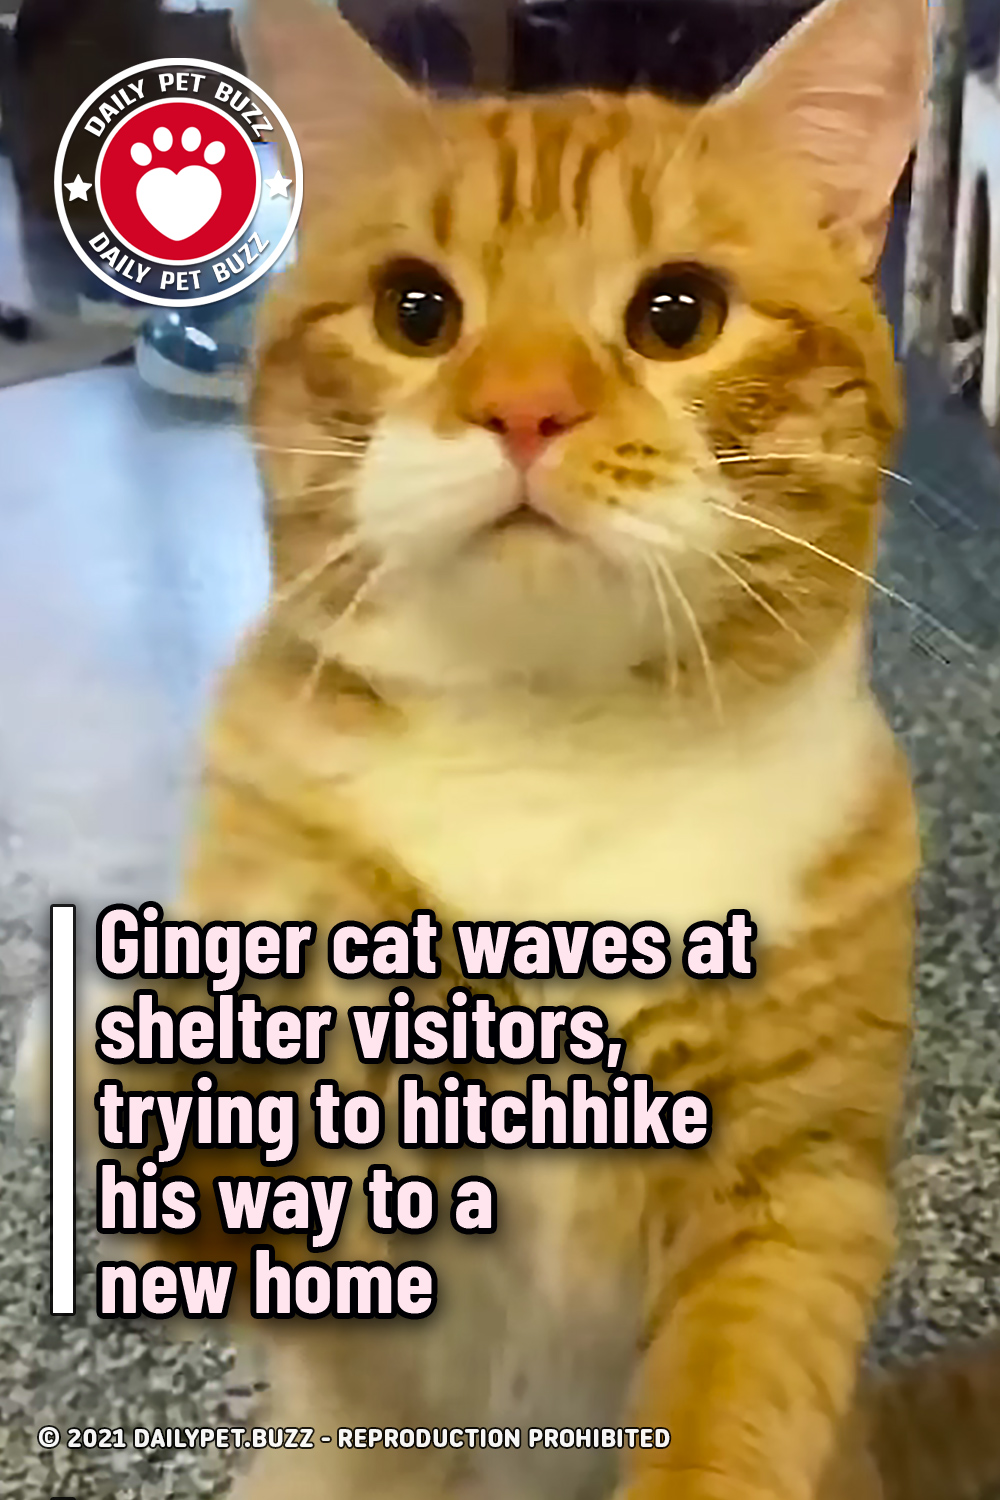 Ginger cat waves at shelter visitors, trying to hitchhike his way to a new home